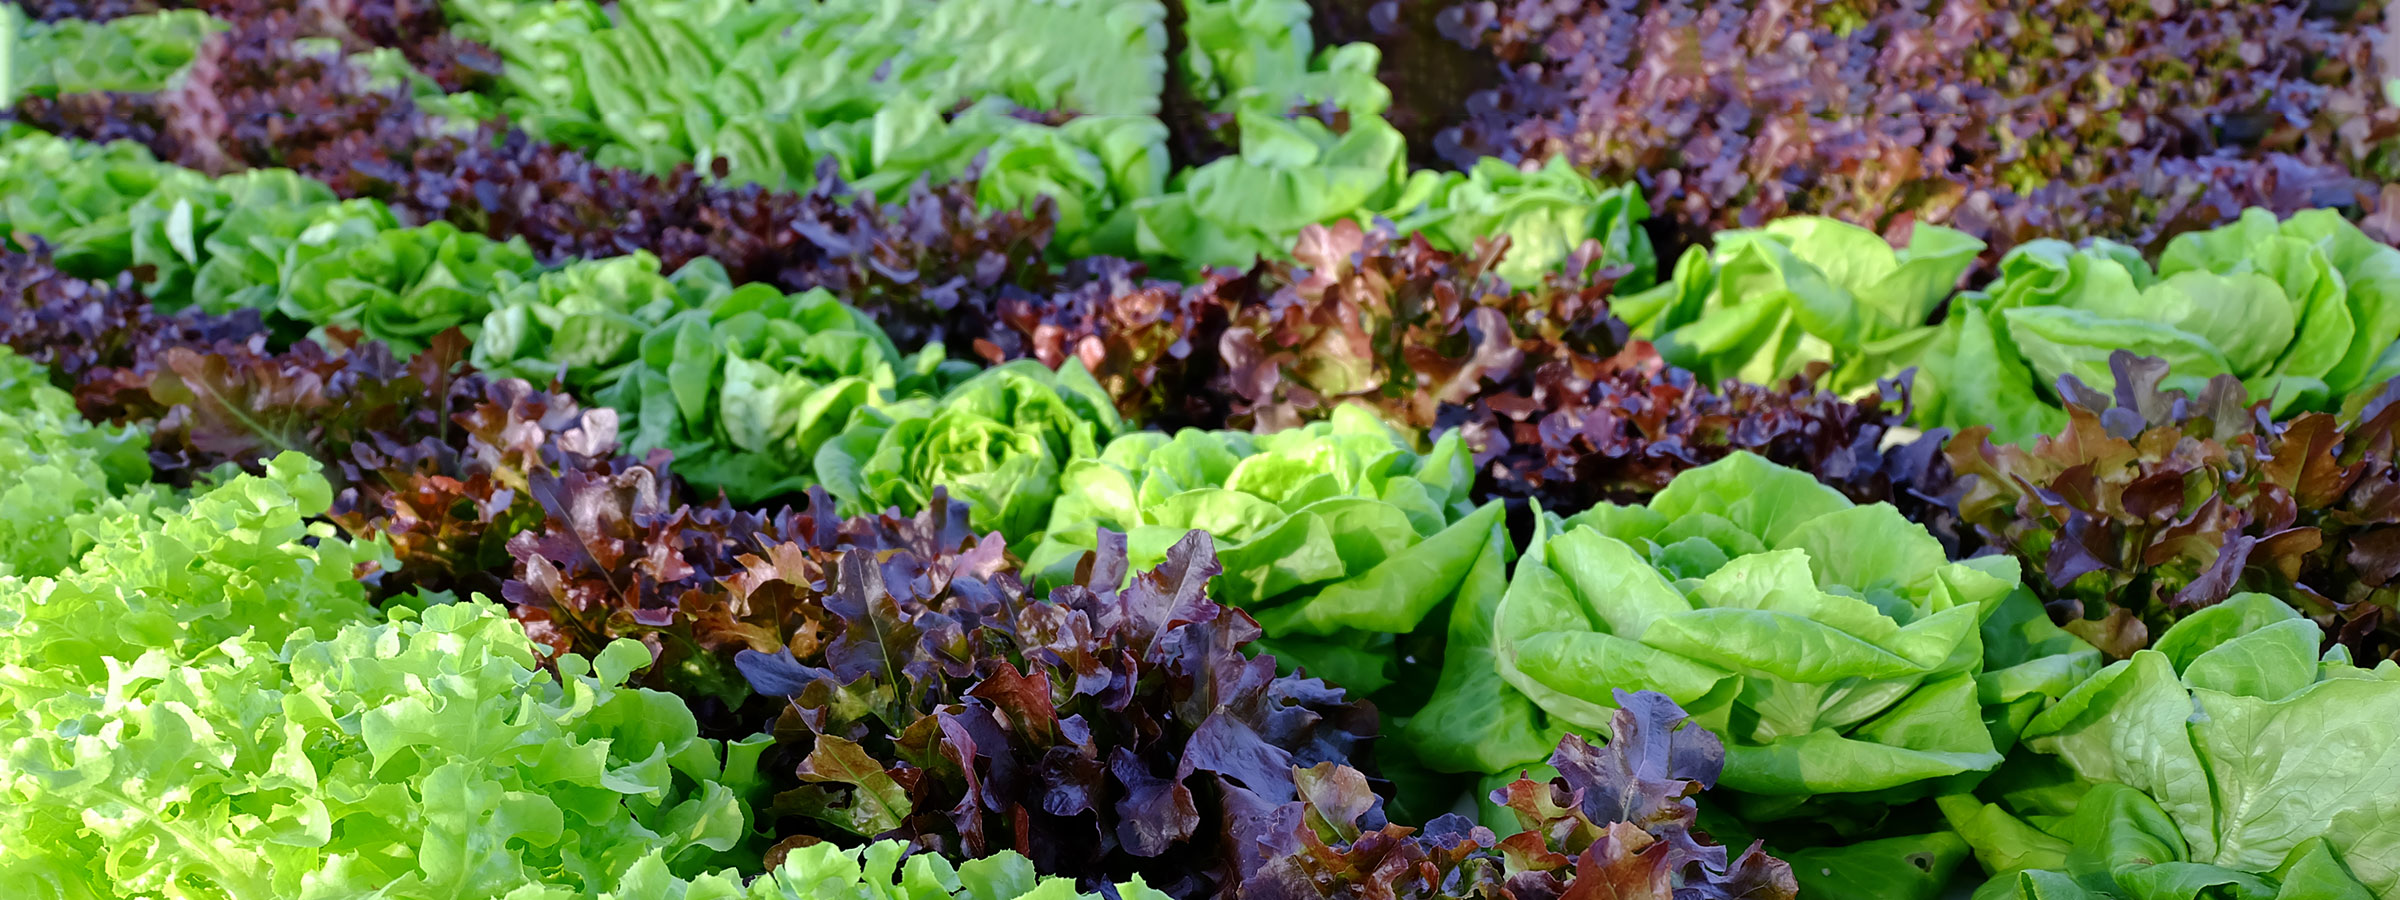 LETTUCE AND LEAFY SALADS